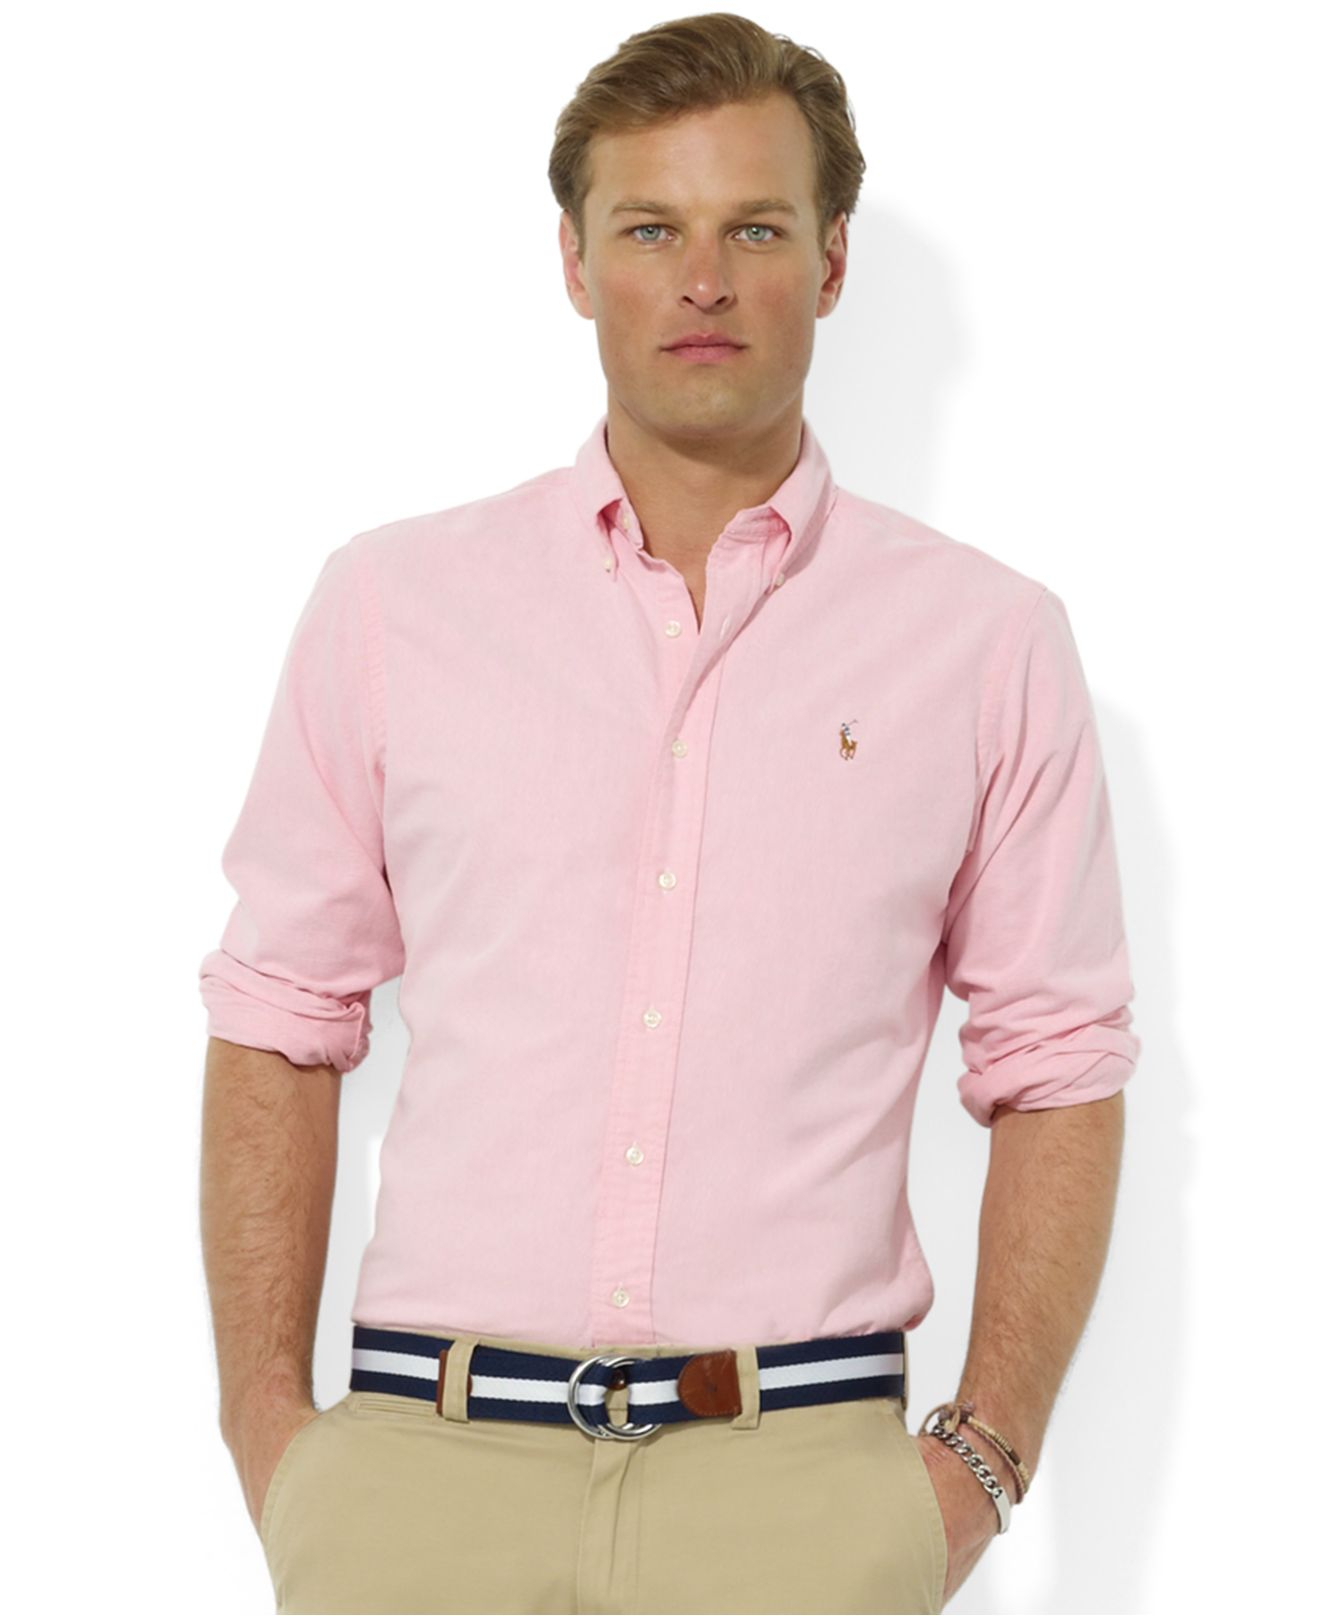 fe522a946bd5 Lyst - Polo Ralph Lauren Core Classic Fit Oxford Shirt in Pink for Men